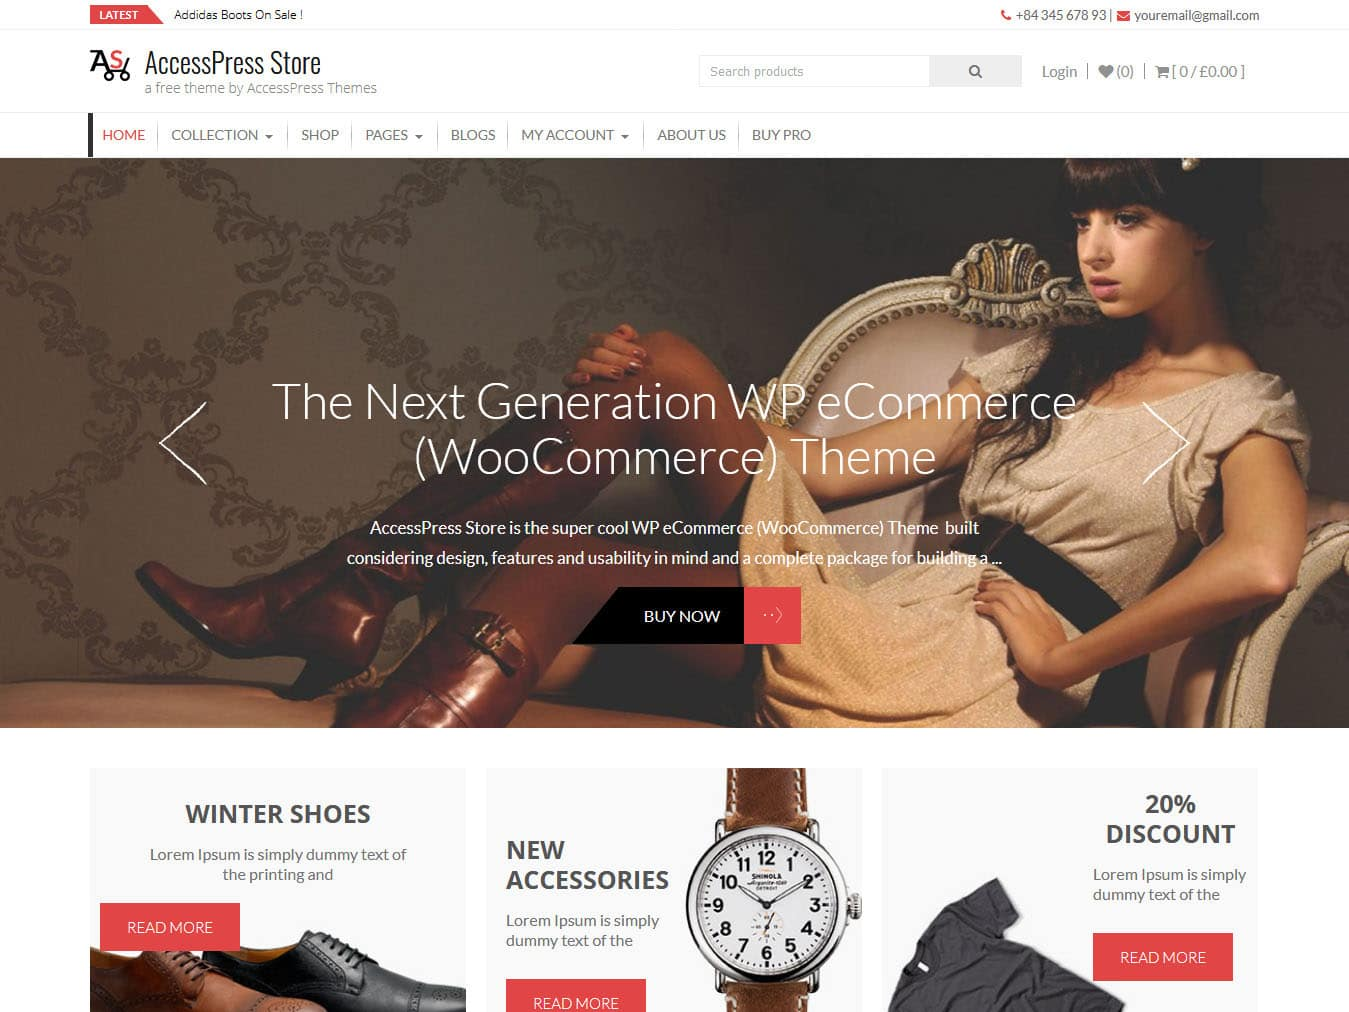 AccessPress Store - Best Free WordPress WooCommerce Theme